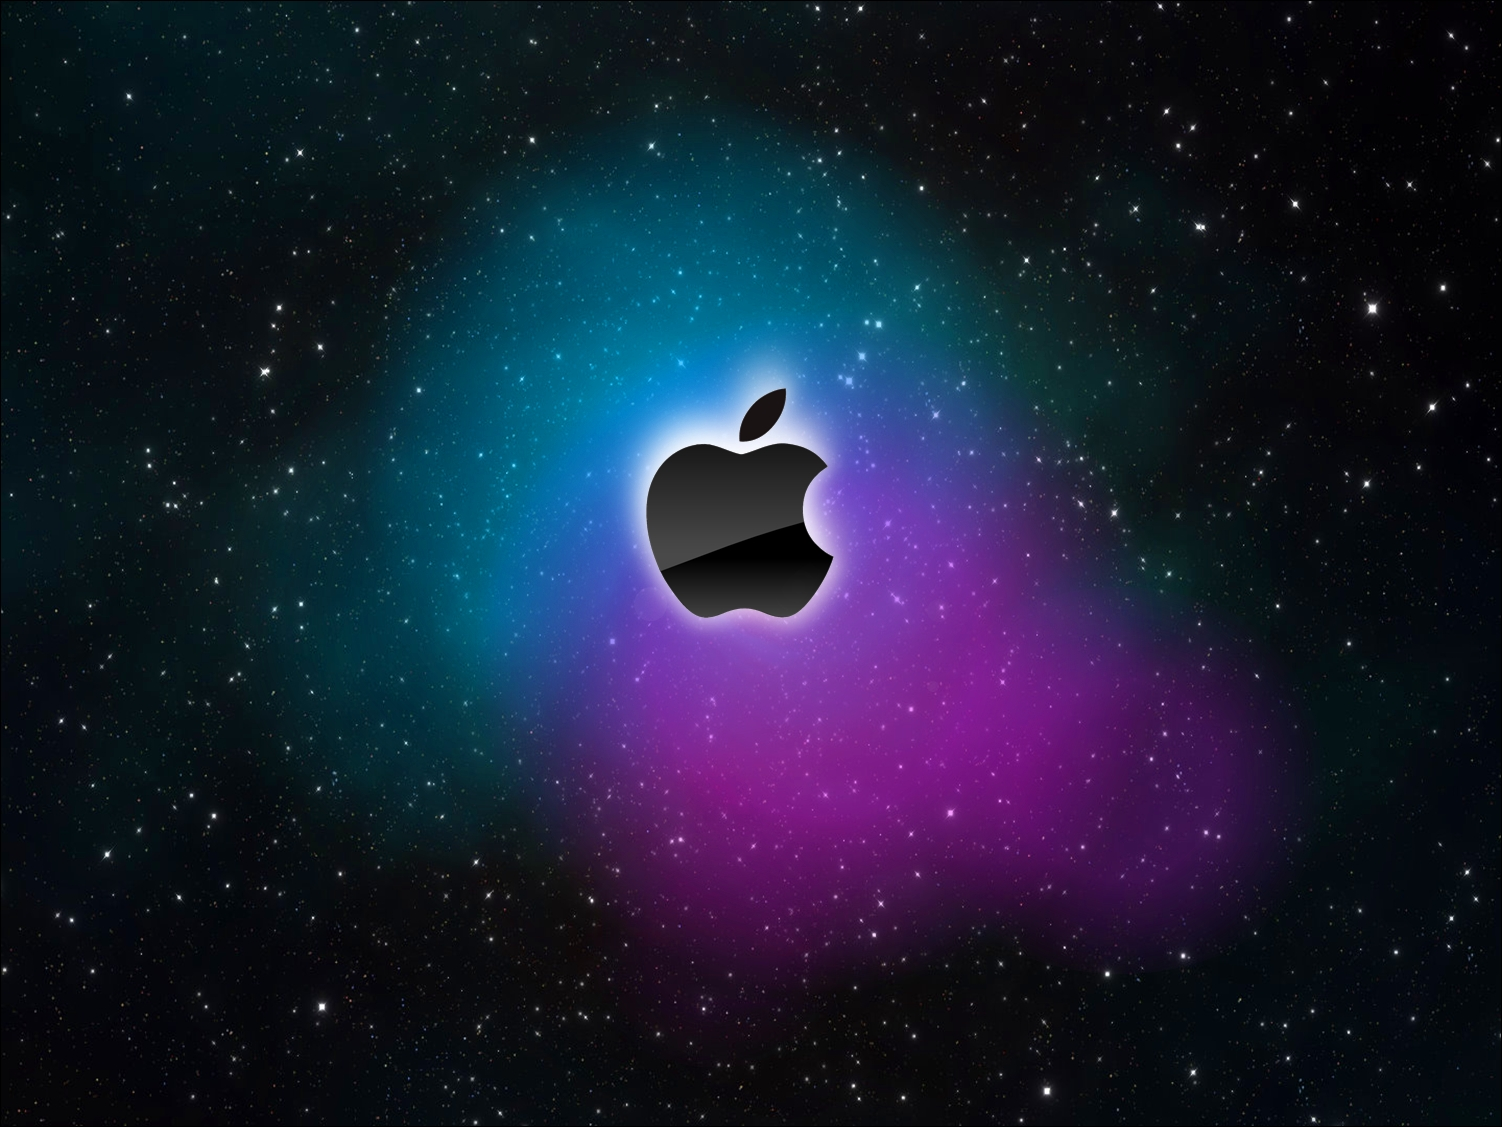 Apple Wallpaper part 2 | Desktop Wallpaper – Desktop Hd Wallpapers